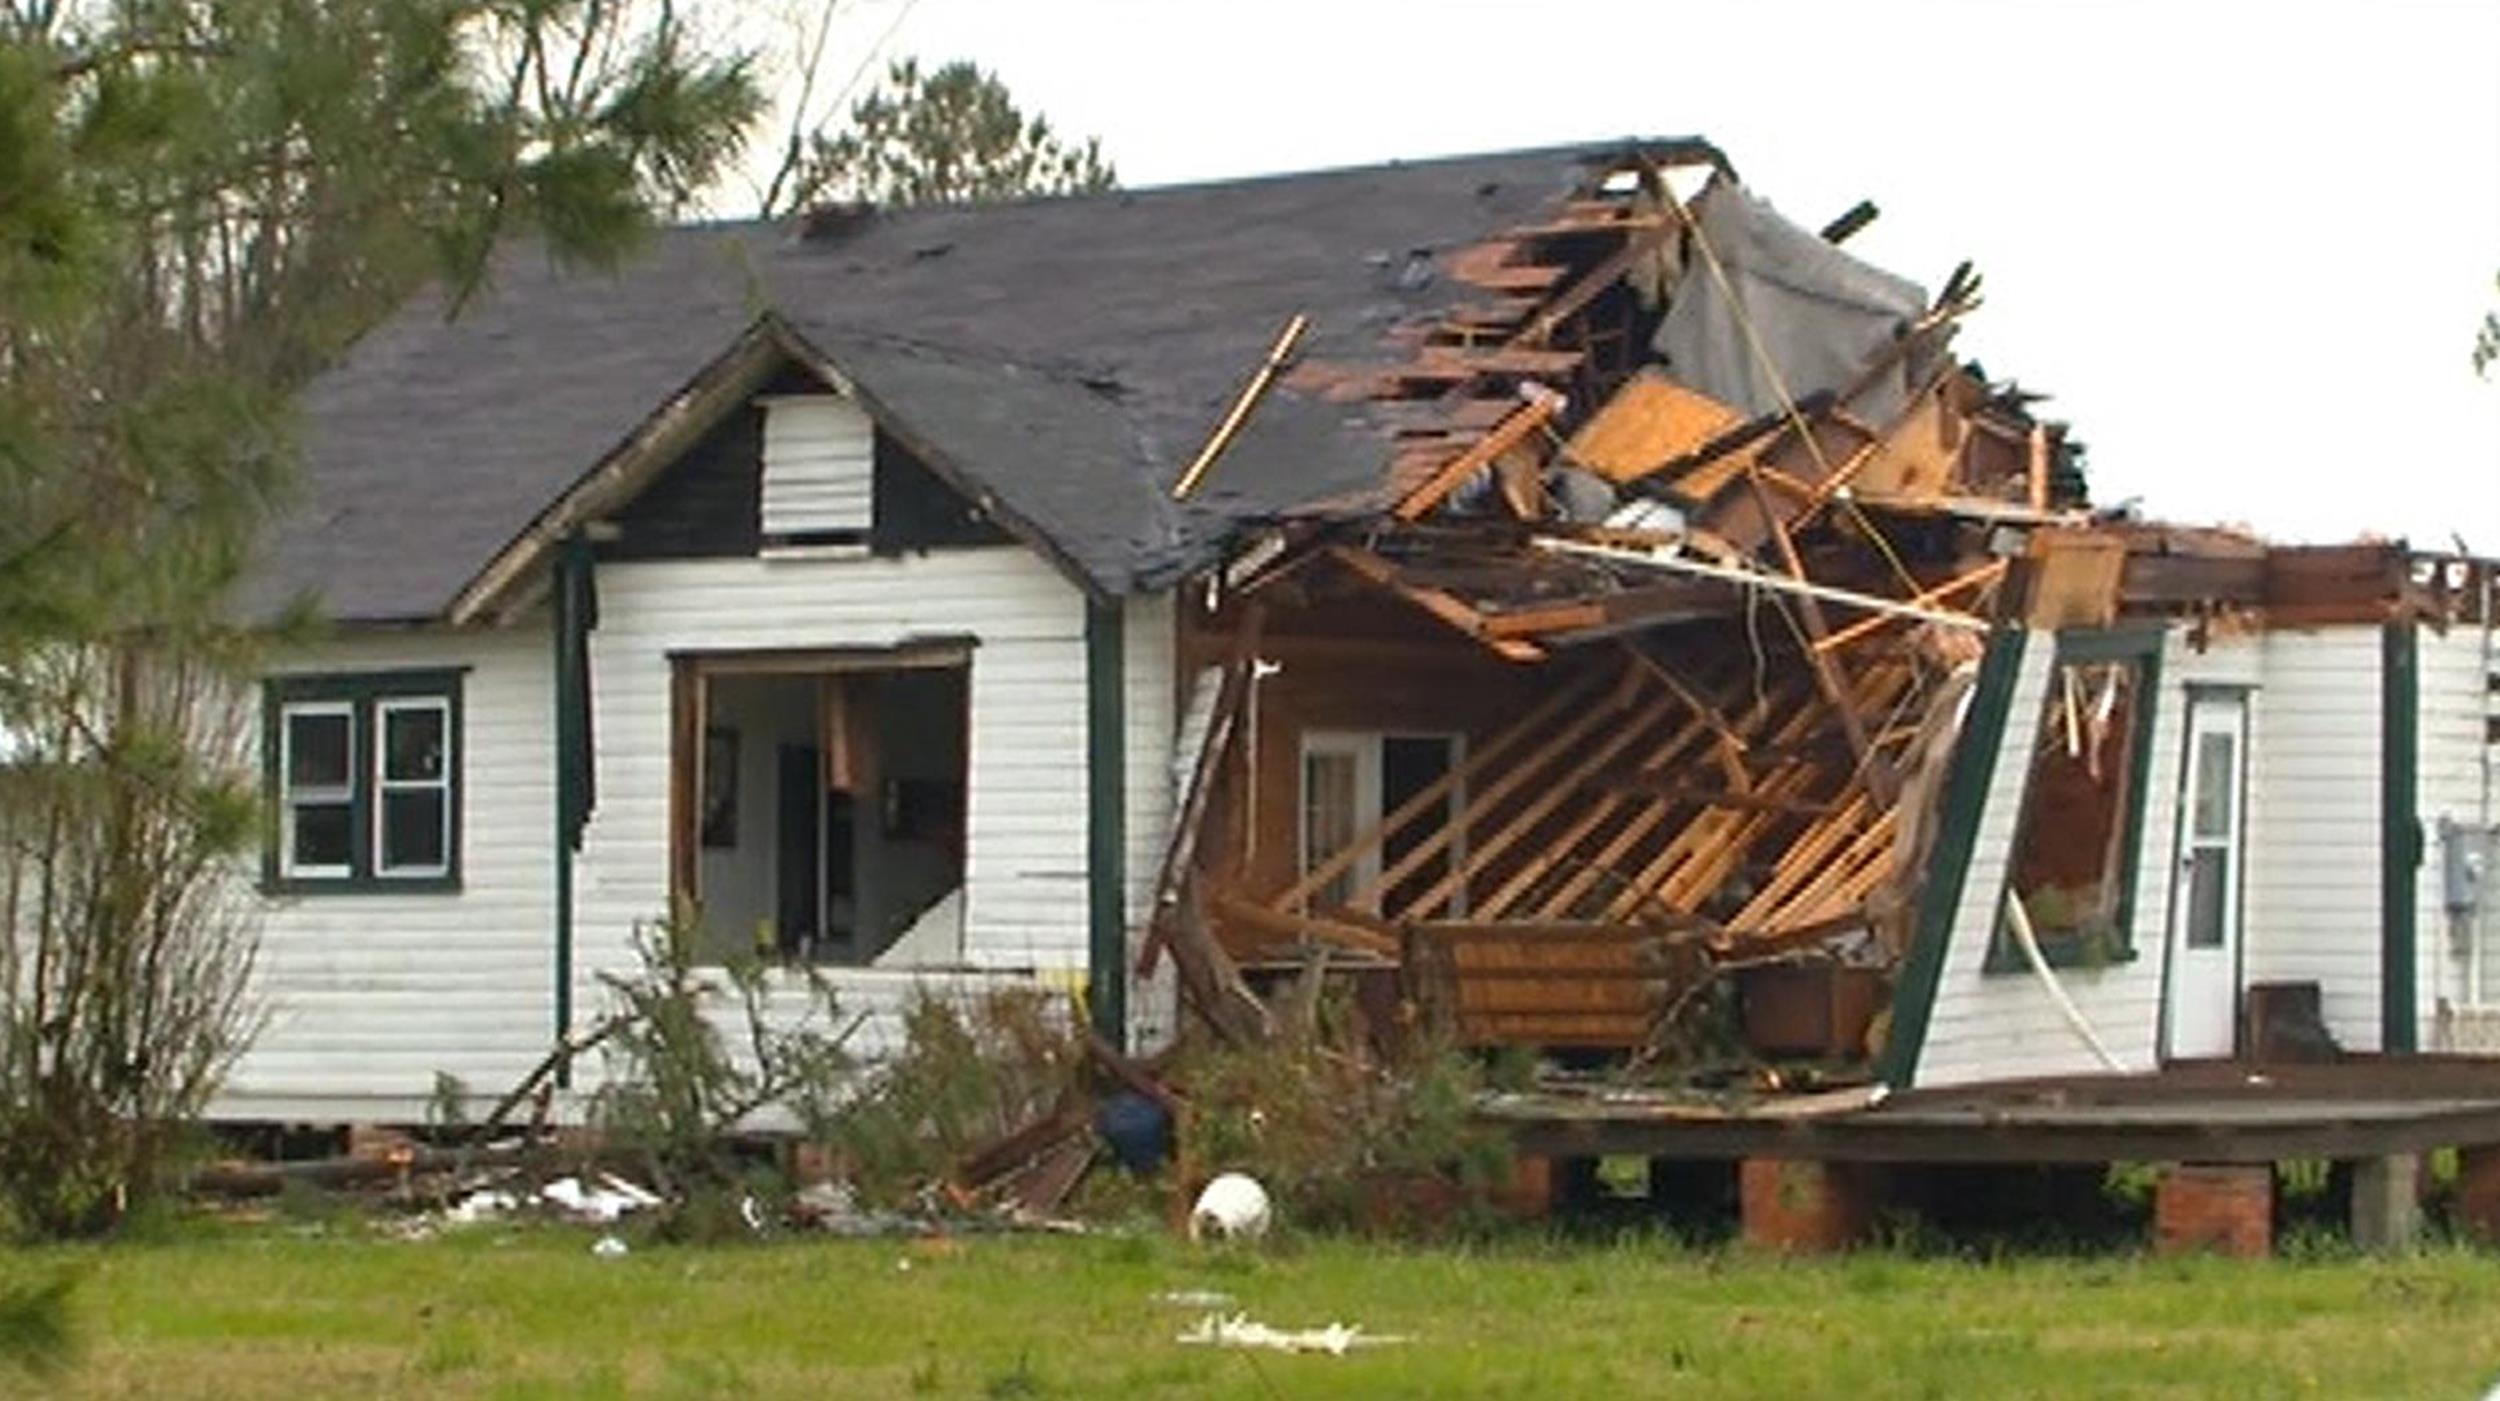 Image: A house in Beaufort County, N.C., was destroyed by a possible tornado.